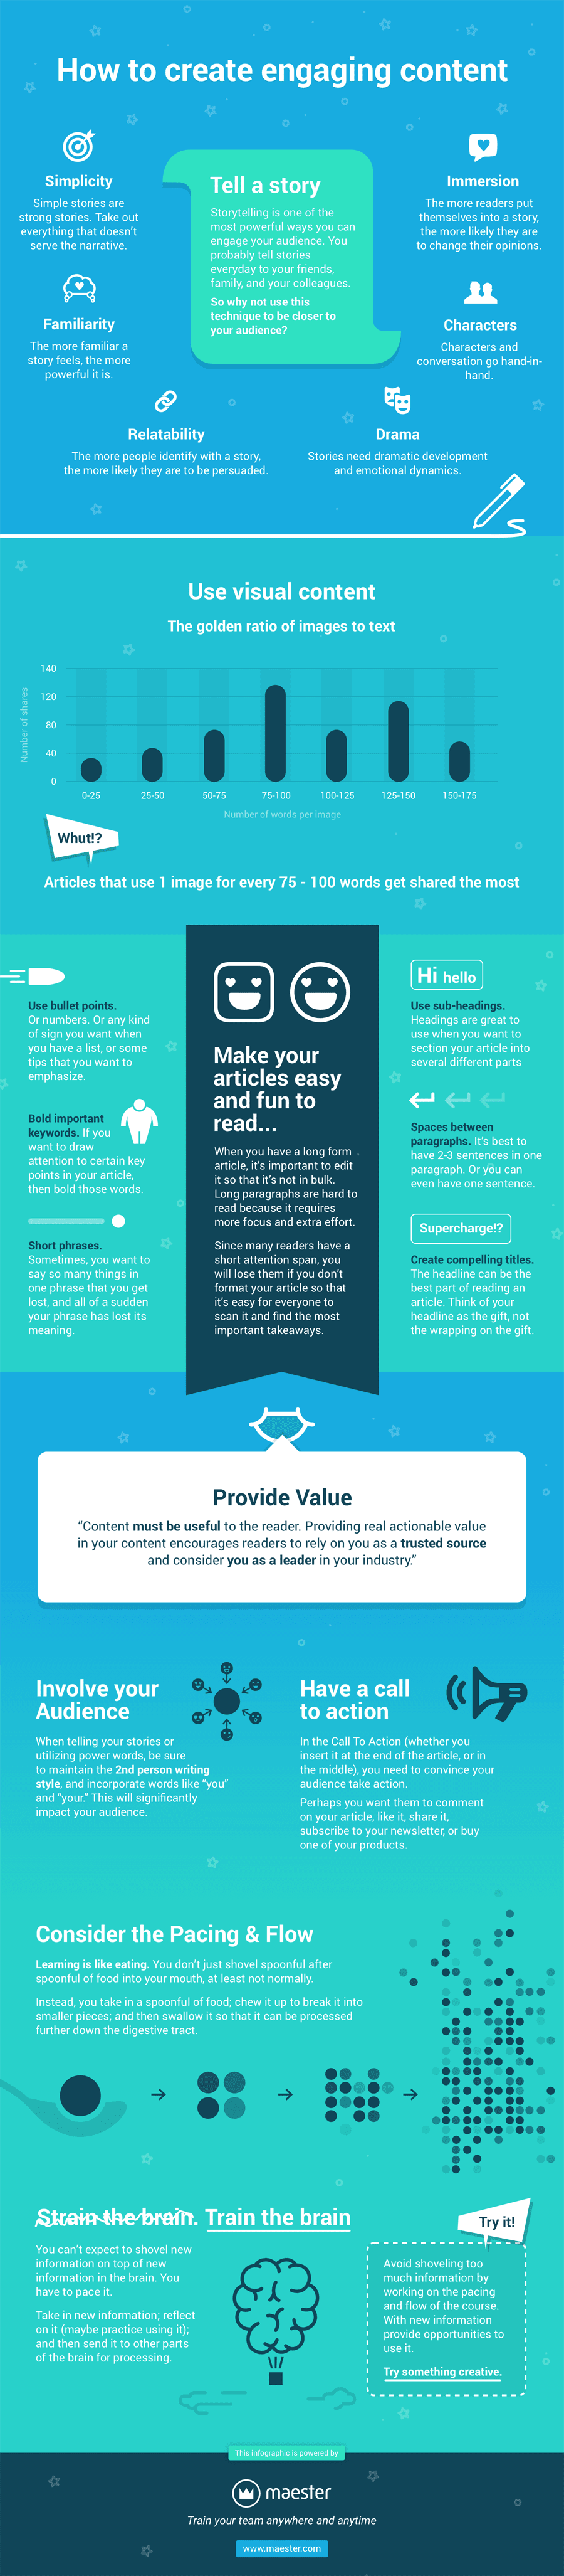 How to Create Engaging Content